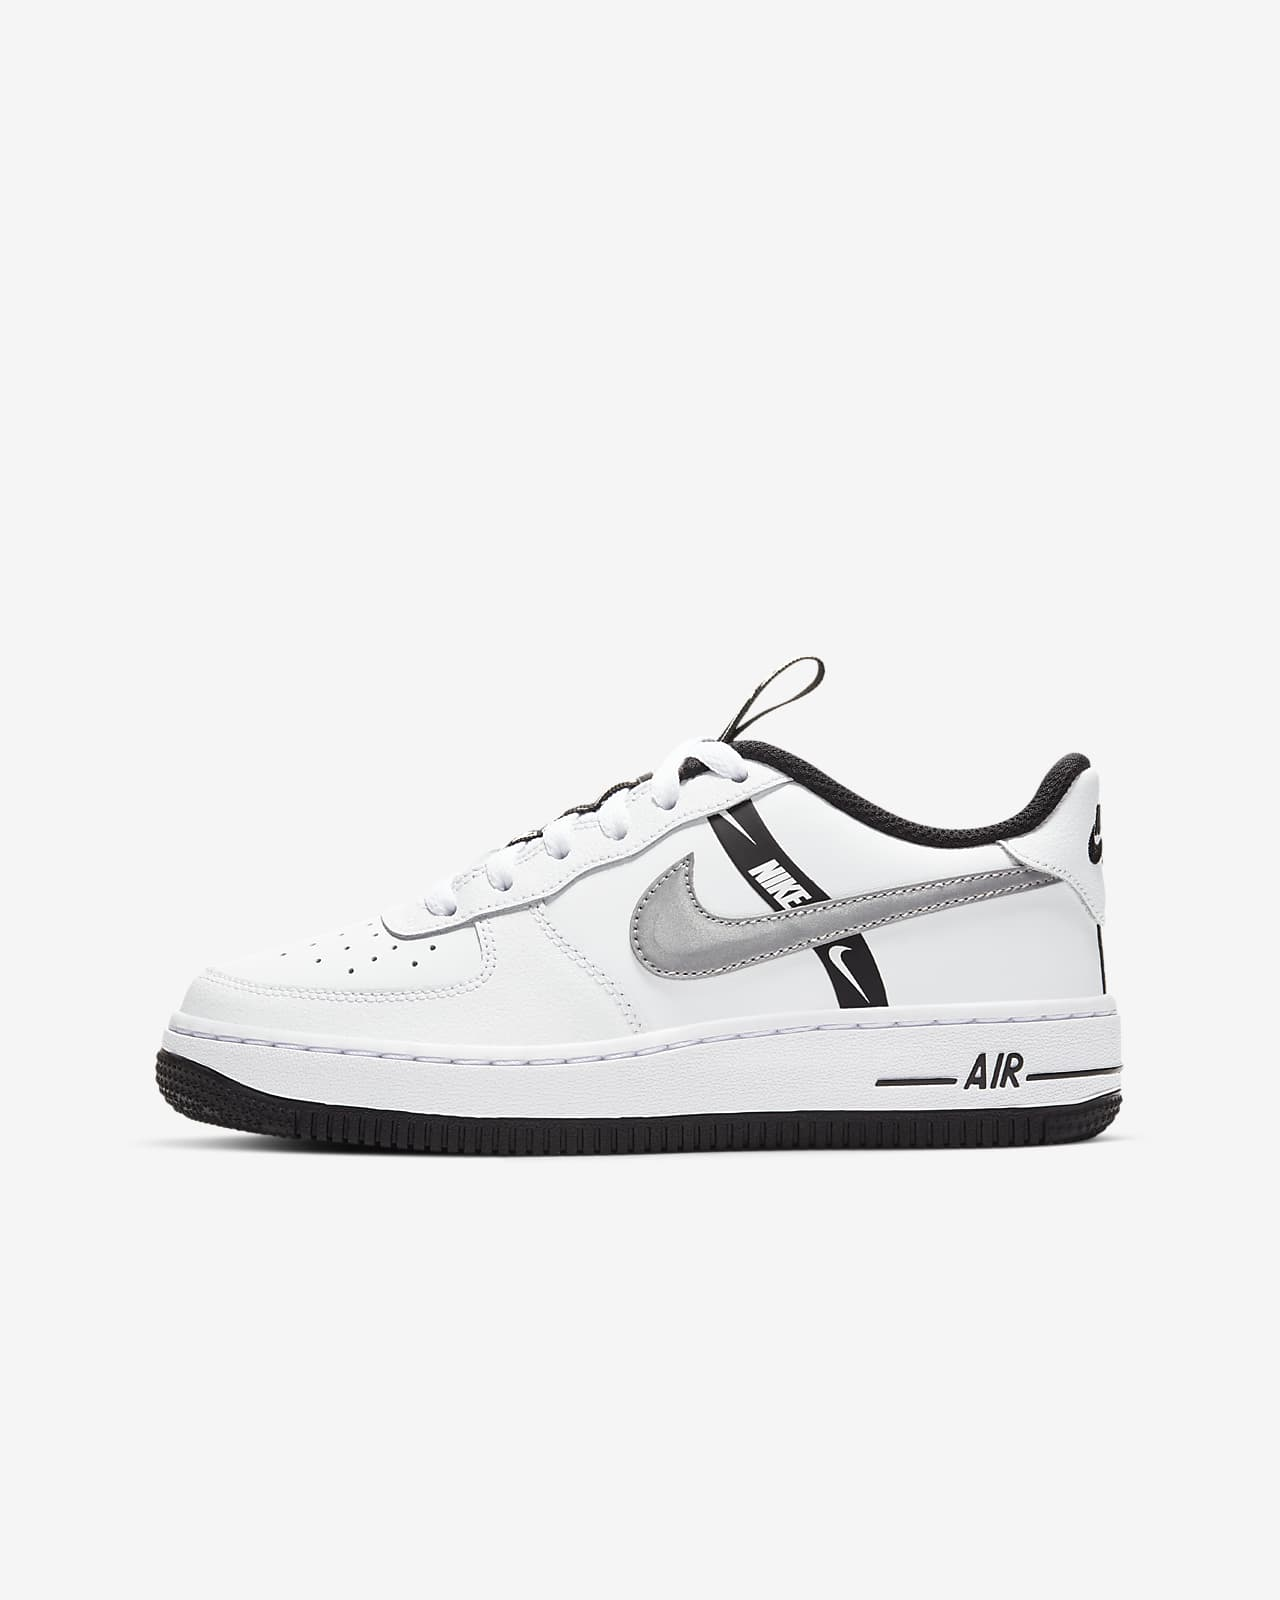 Nike Air Force 1 LV8 KSA (GS) 大童运动童鞋